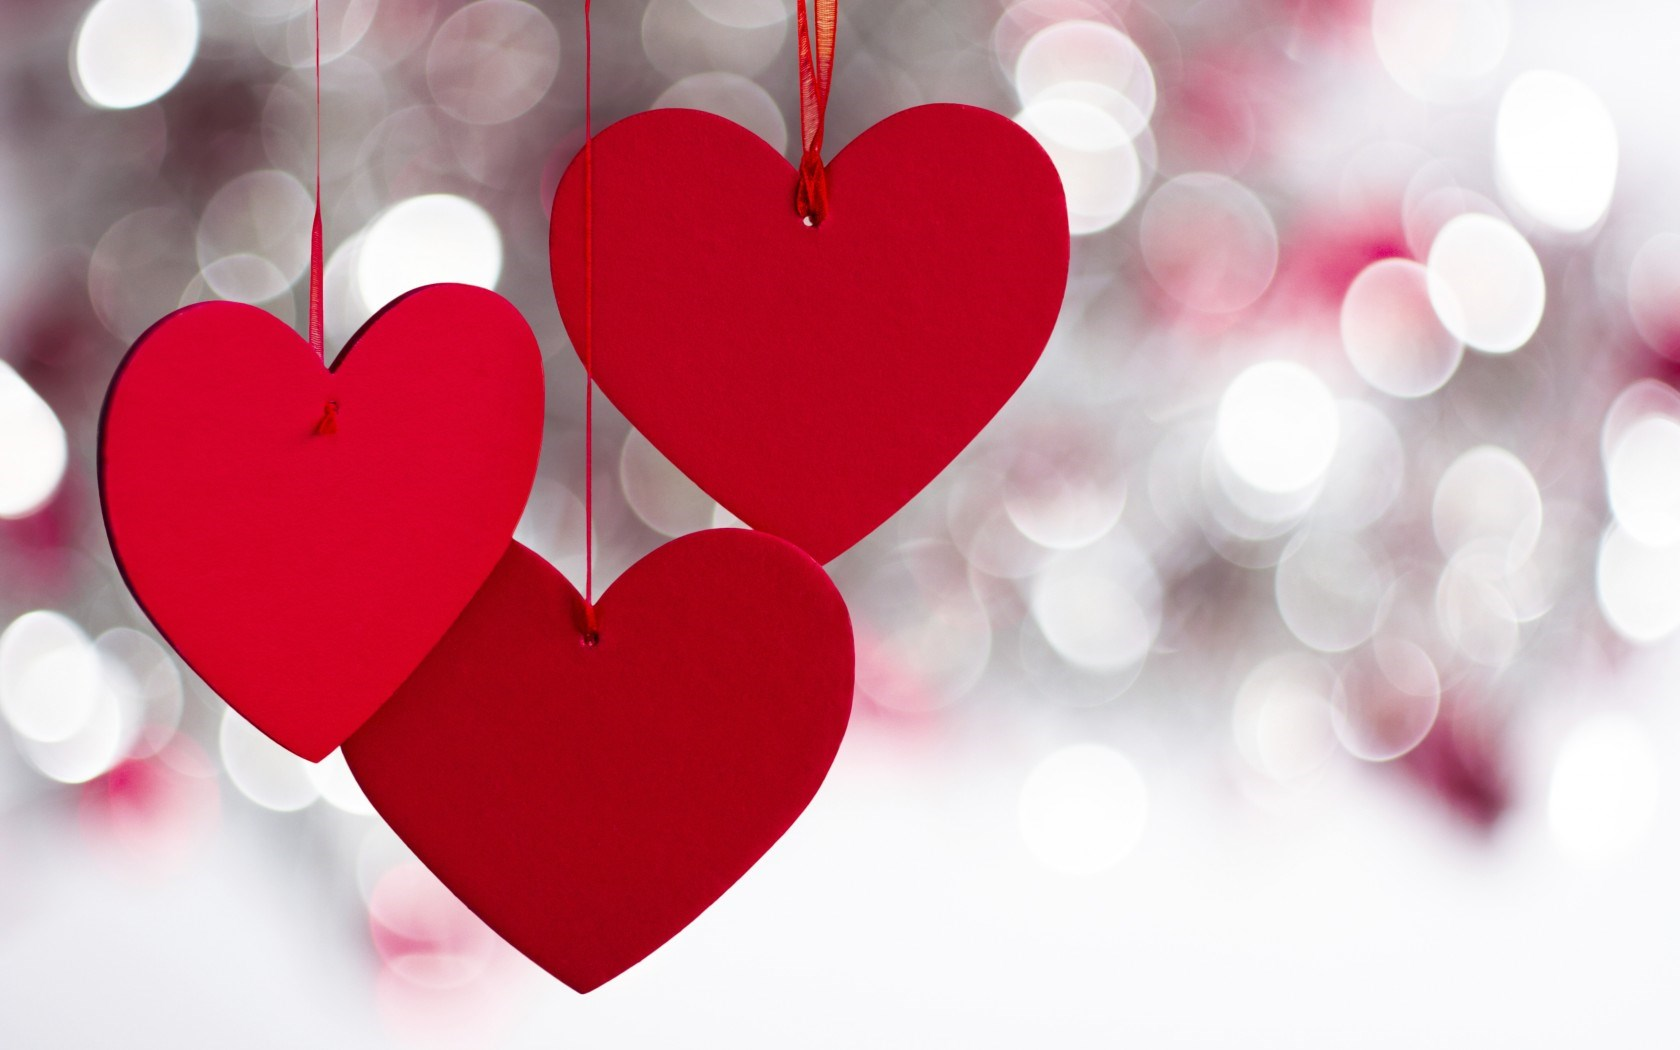 3-lovely-red-heart-wallpaper-beautiful